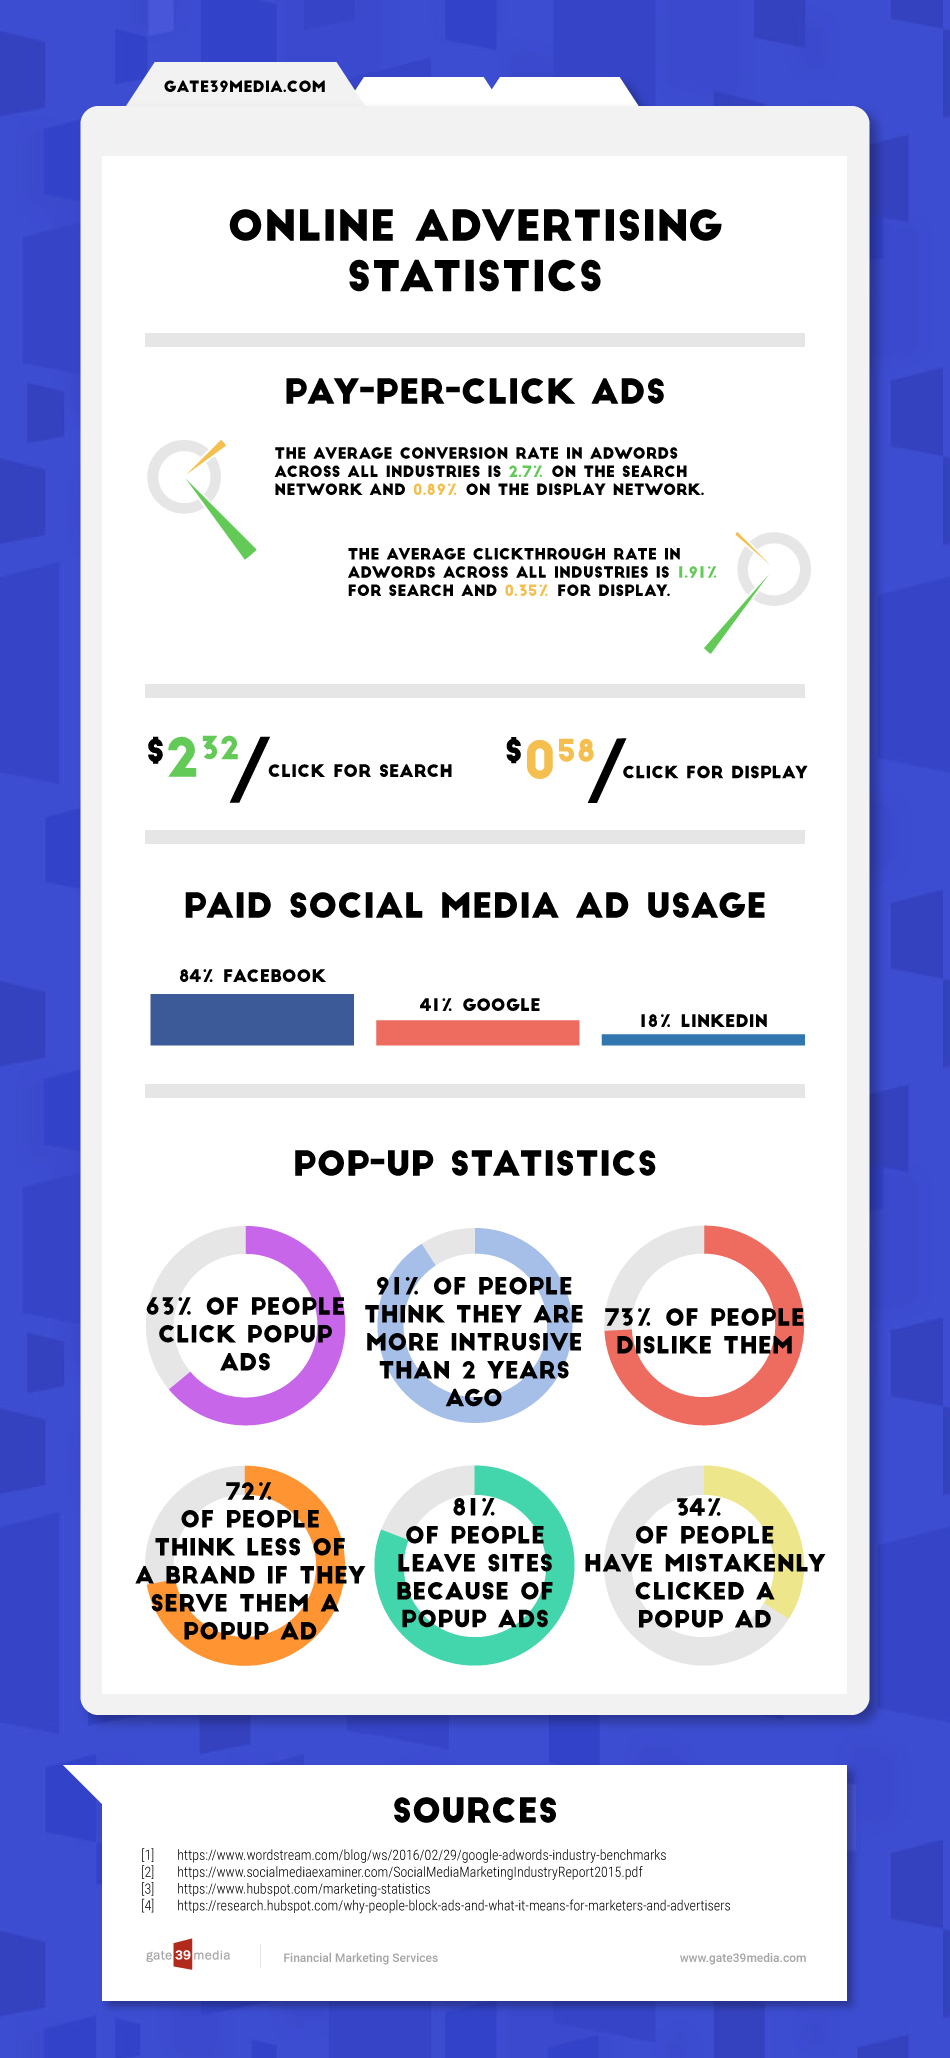 Online Advertising Statistics: An Infographic